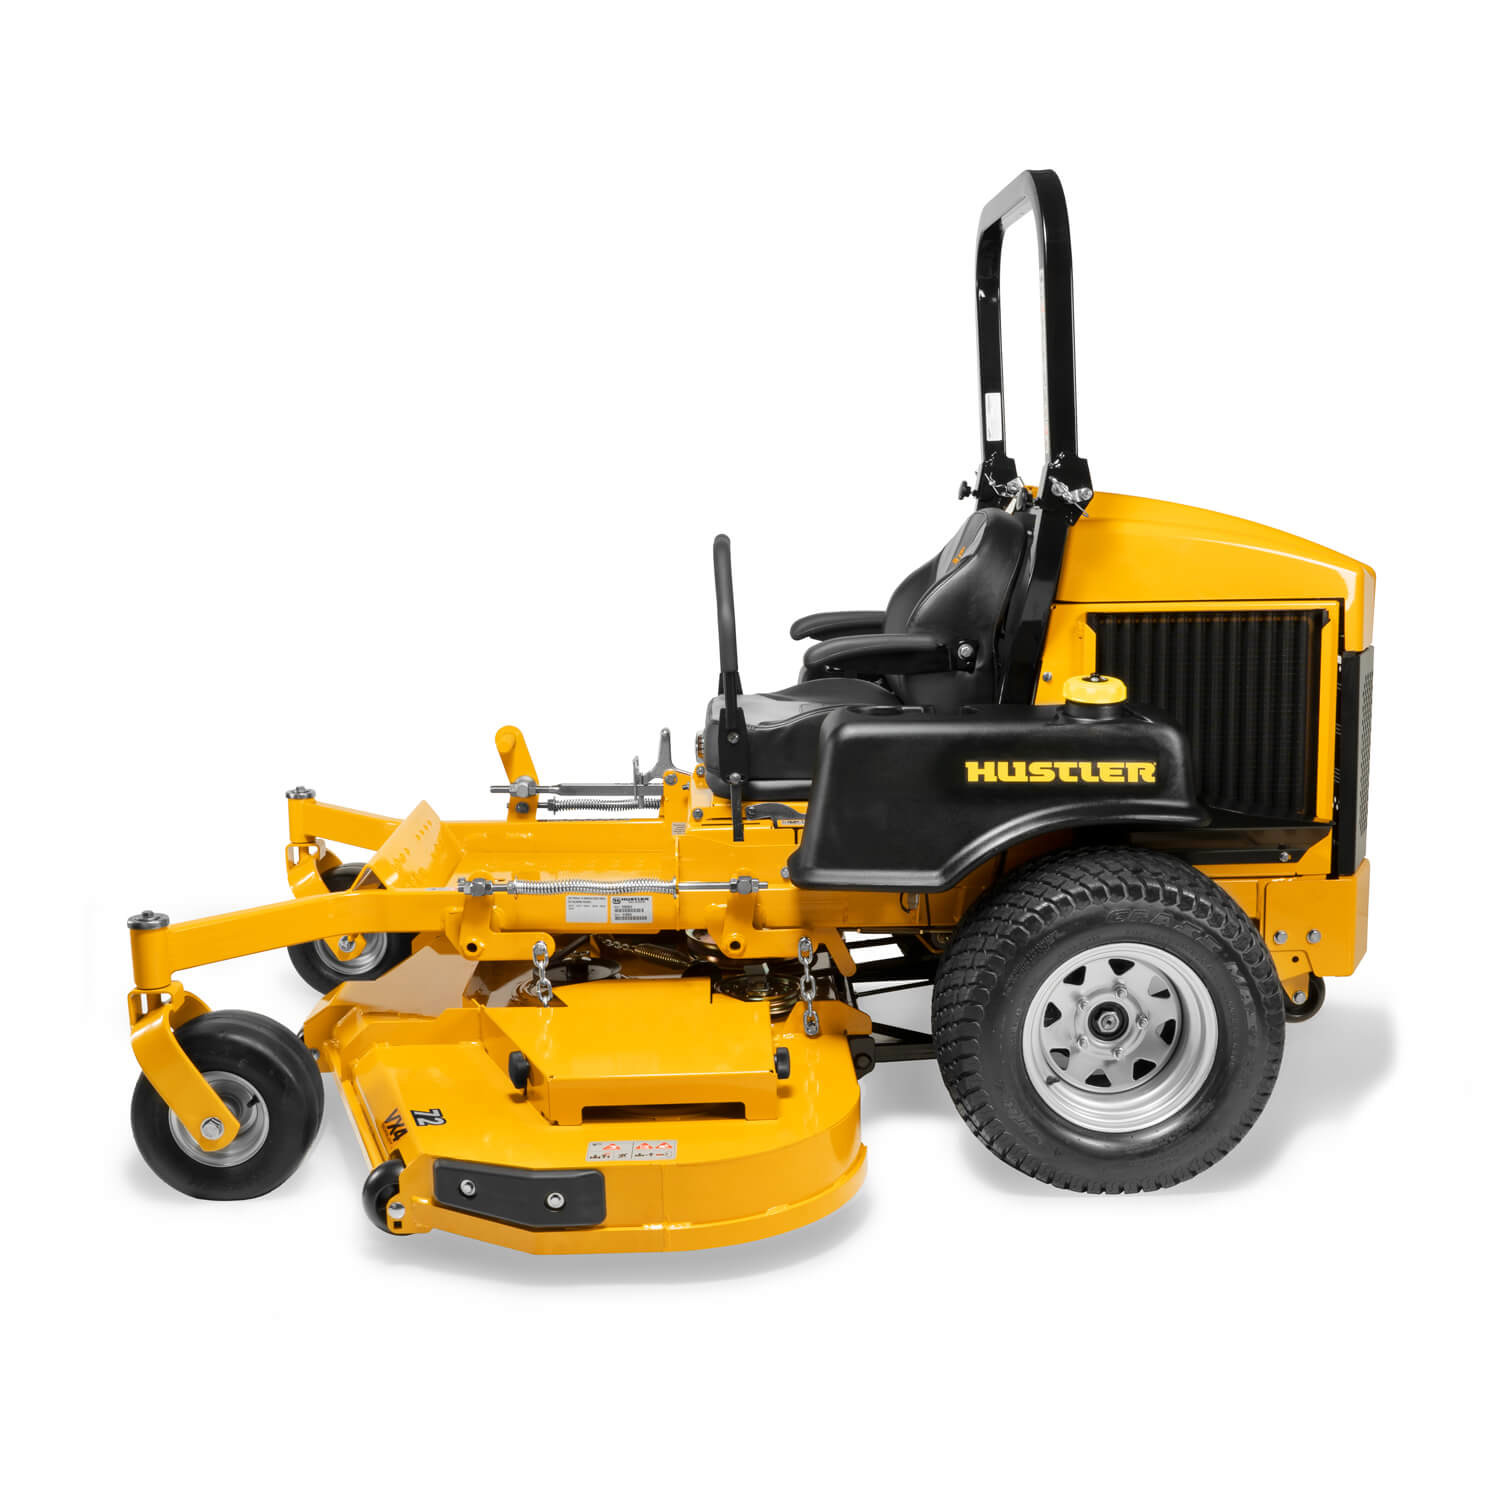 Image of the profile of a yellow mower